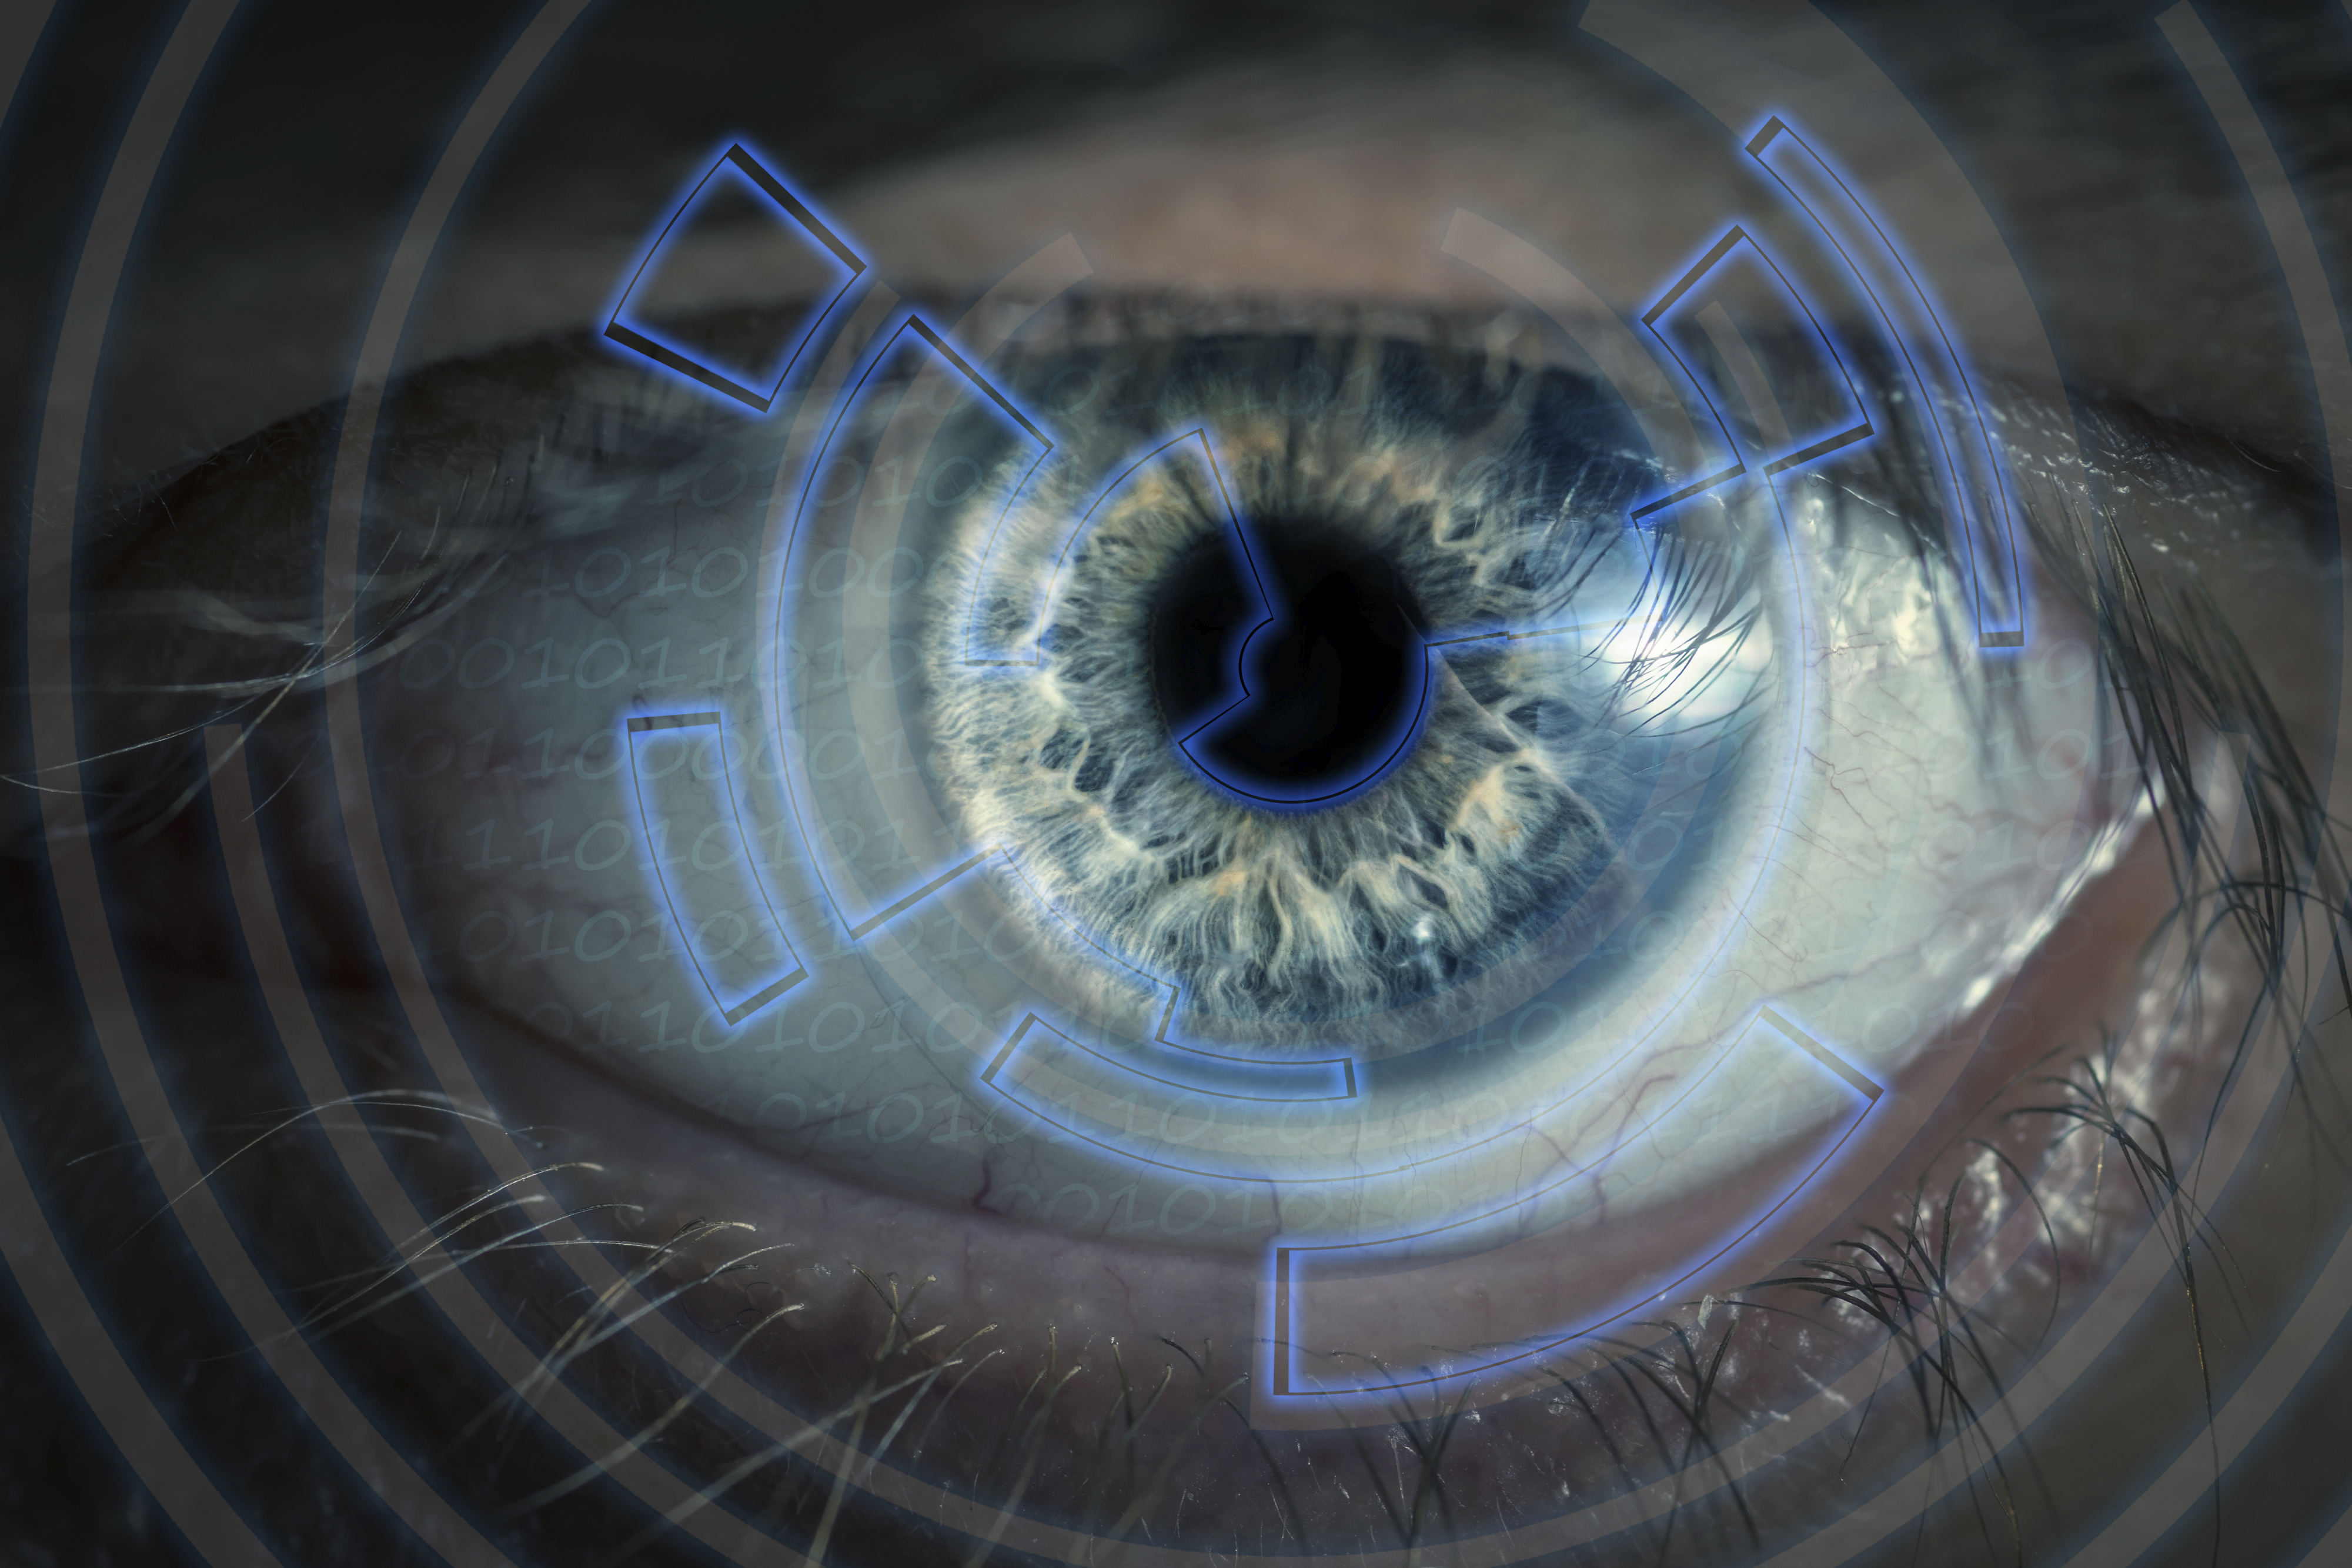 Rethinking The Use Of Biometric Systems For Refugee